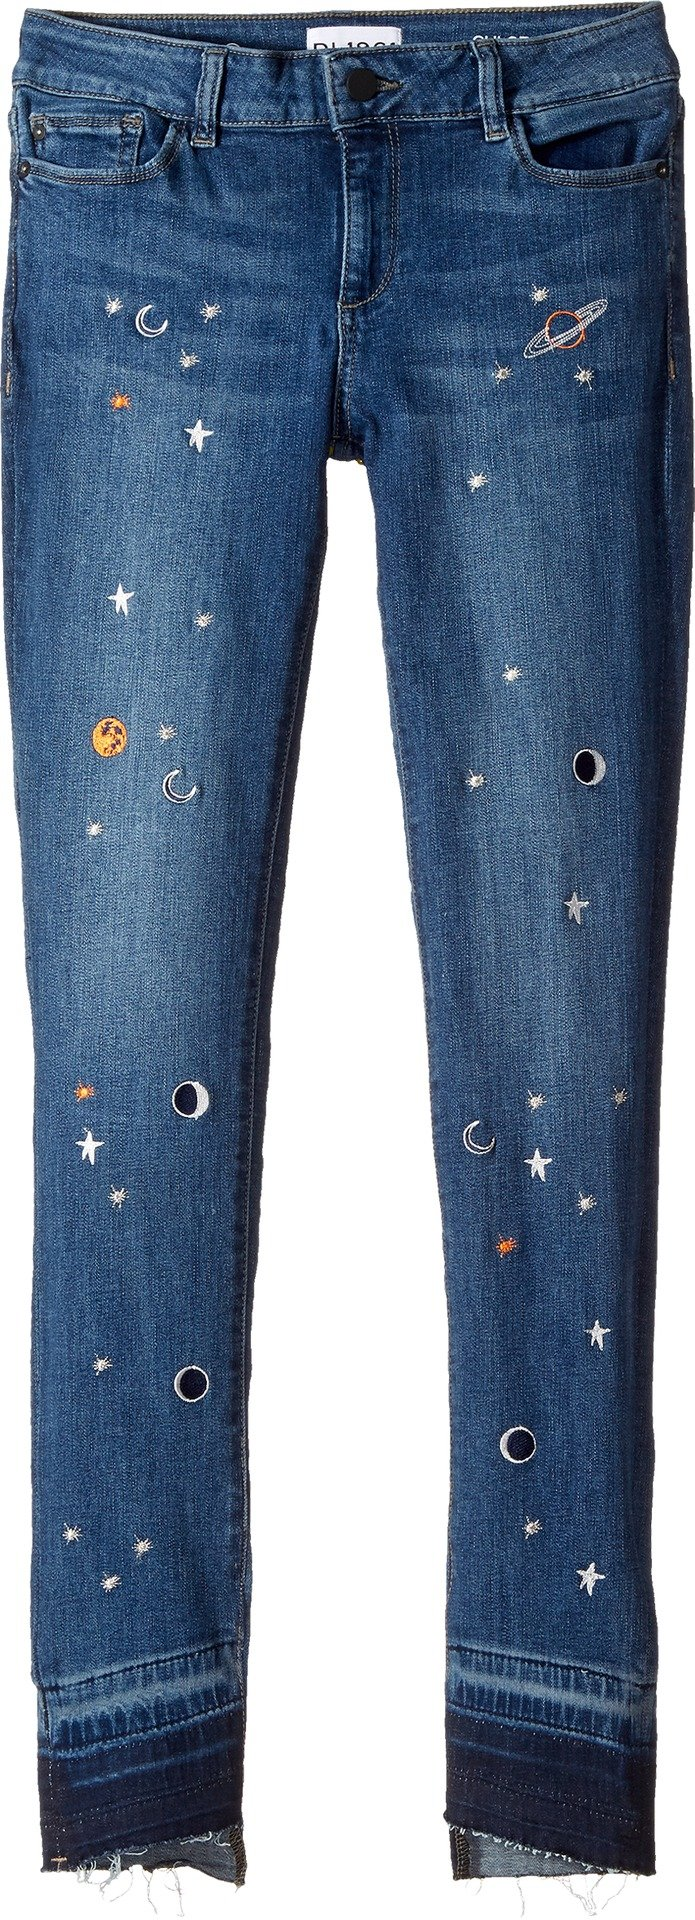 DL1961 Kids Girl's Embroidered Skinny Jeans in Galaxy (Big Kids) Galaxy 16